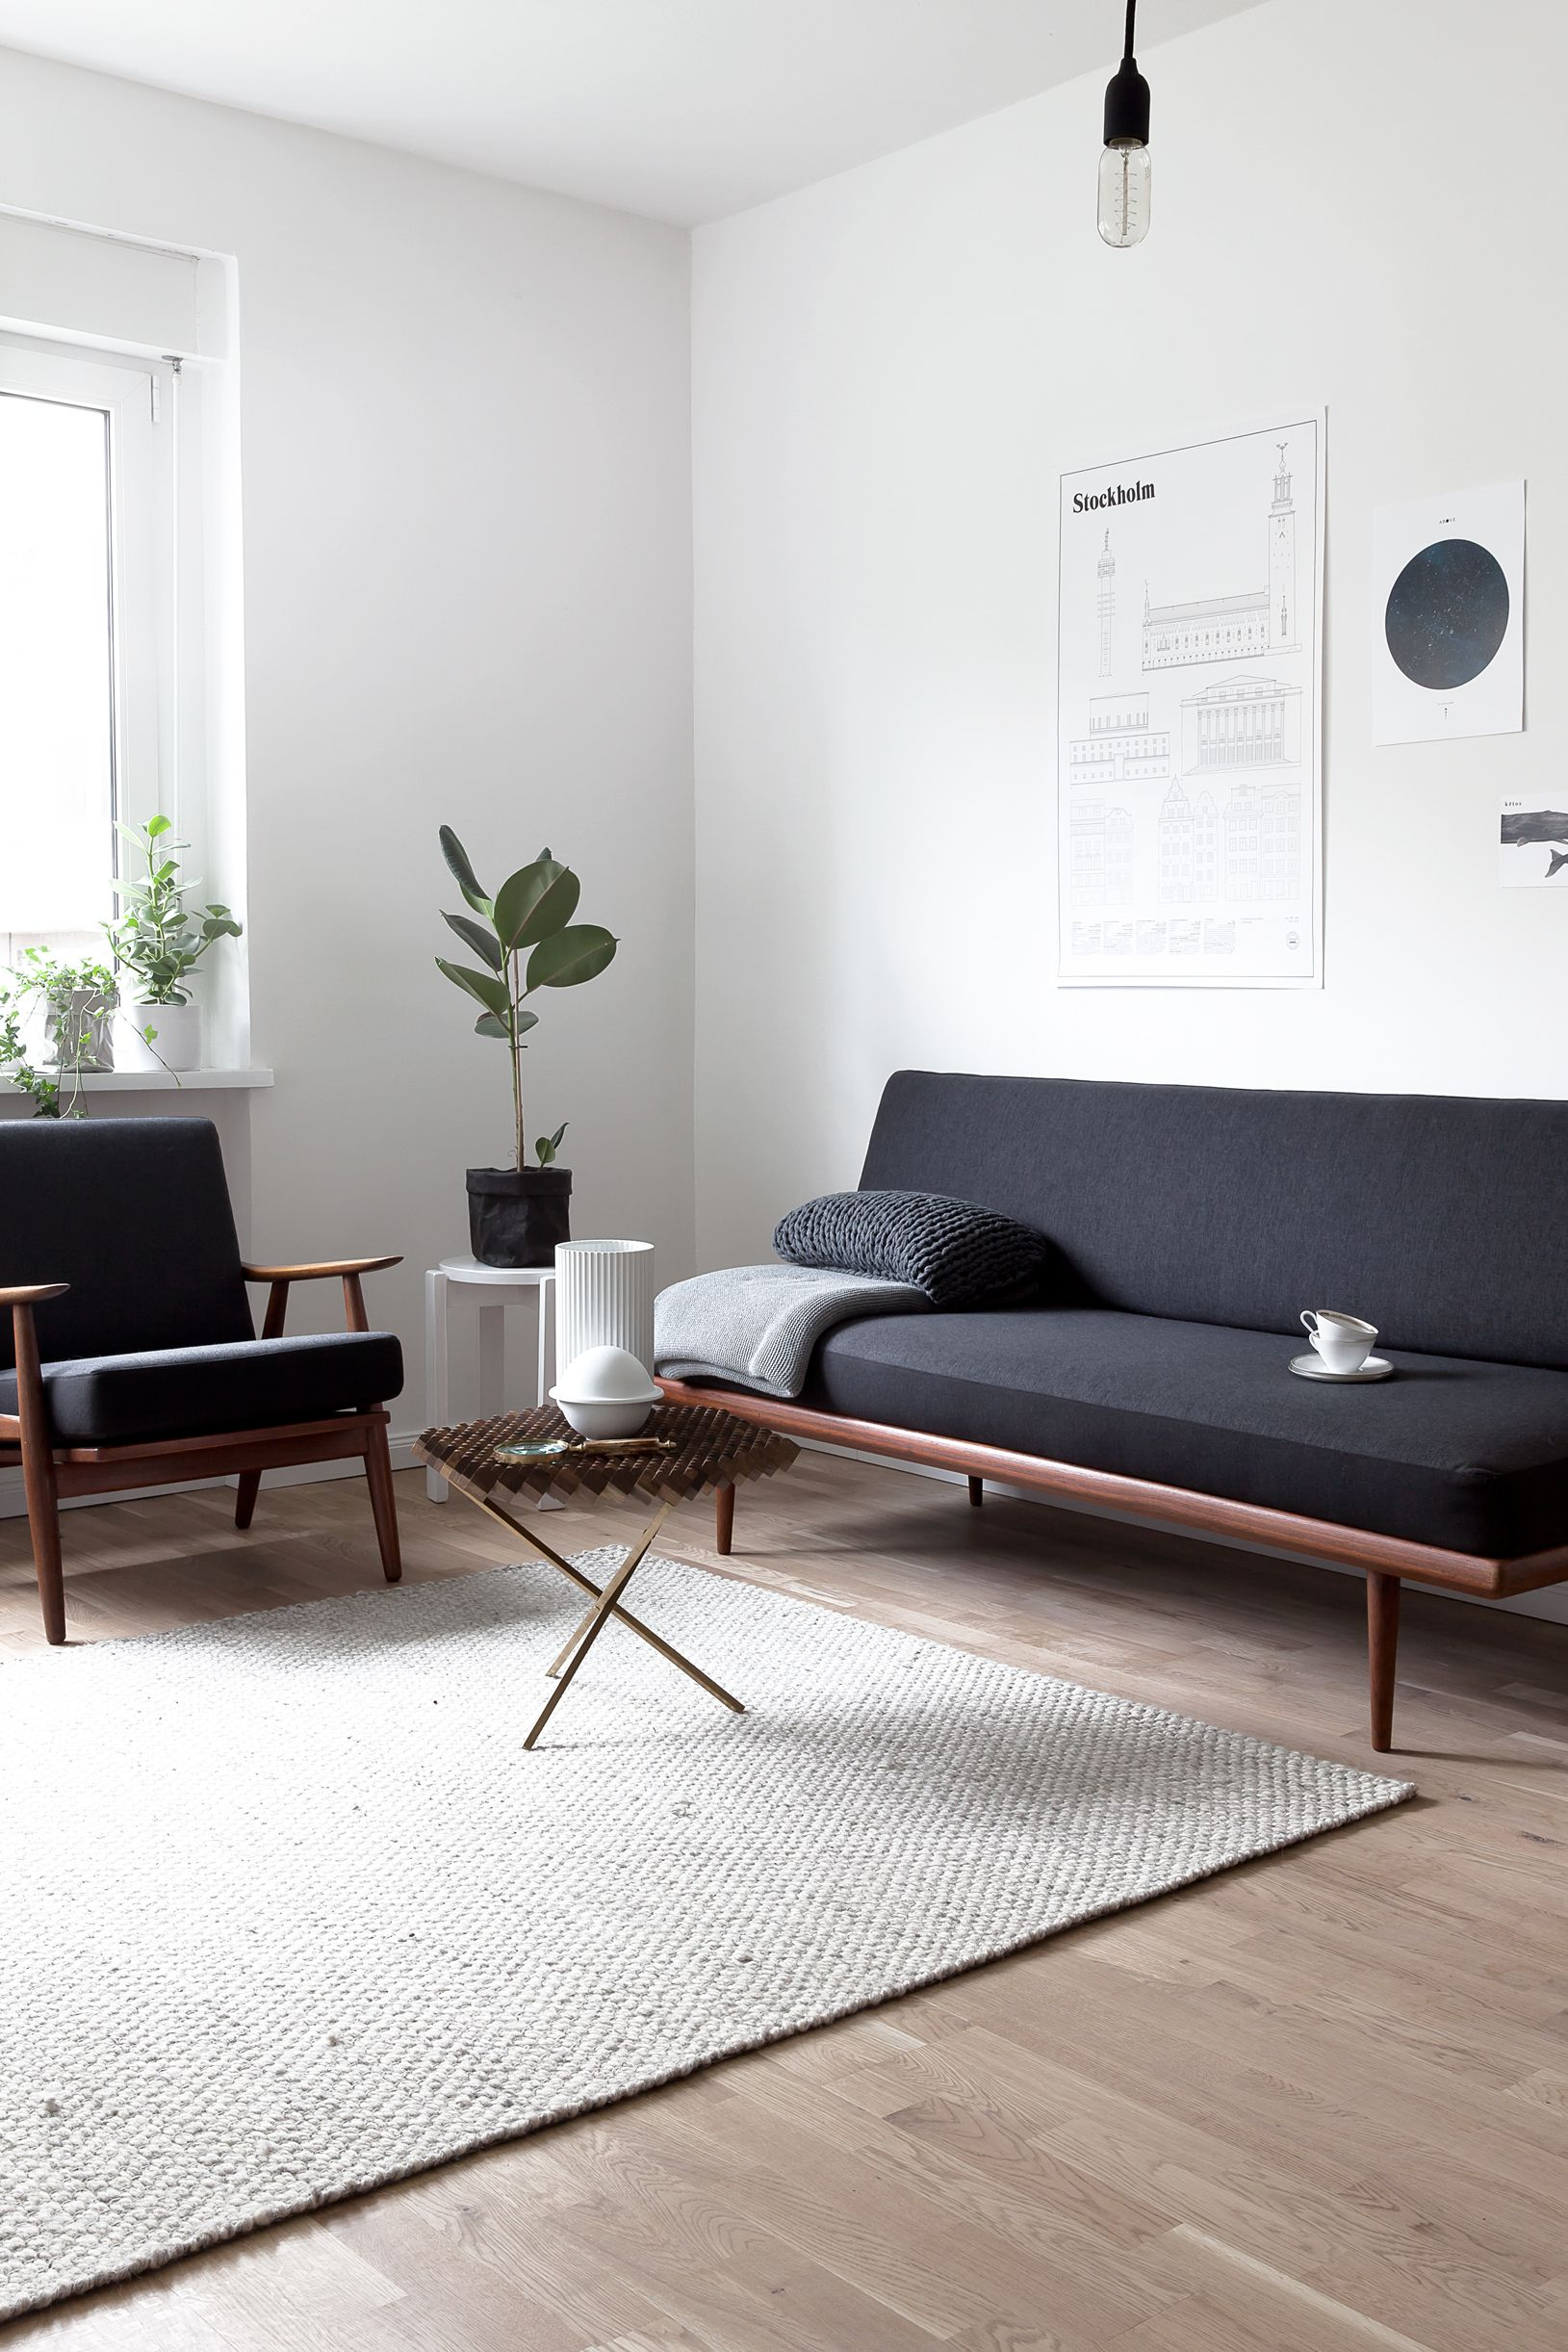 simple living room ideas pictures wooden sofa creating more spacious and alive by minimalist design 20 of your space